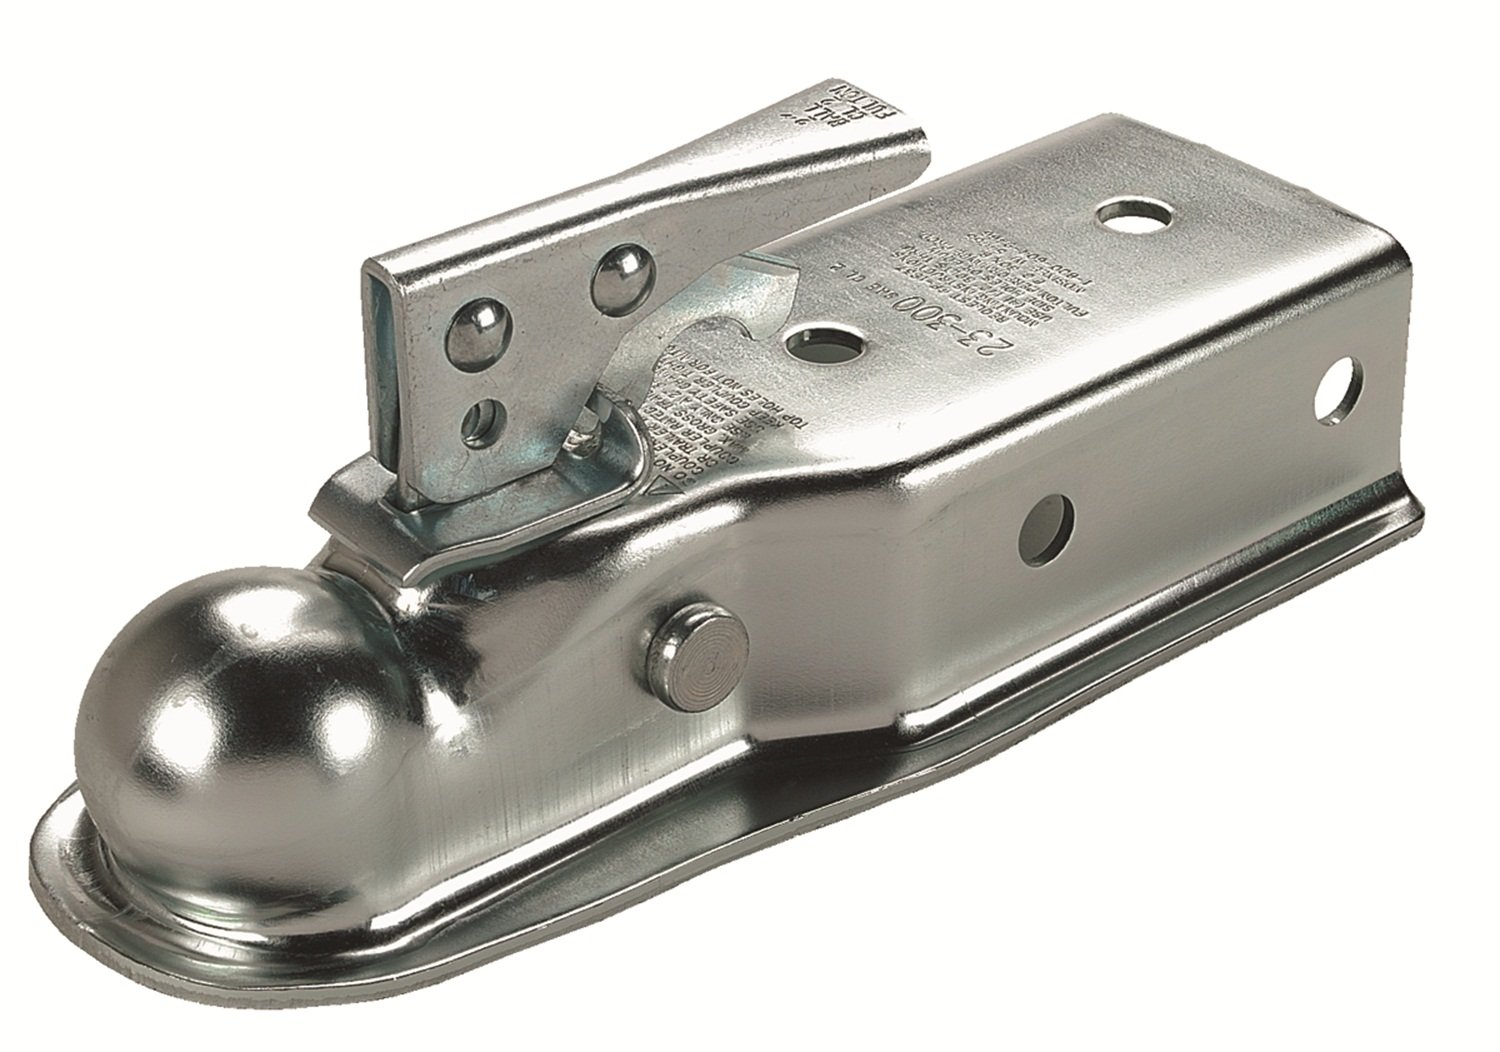 Fulton Straight Coupler, Class II, 2-Inch Ball, 3-Inch Channel-Holes On 3-Inch Centers, 3500-Pound, Zinc 23300 0301